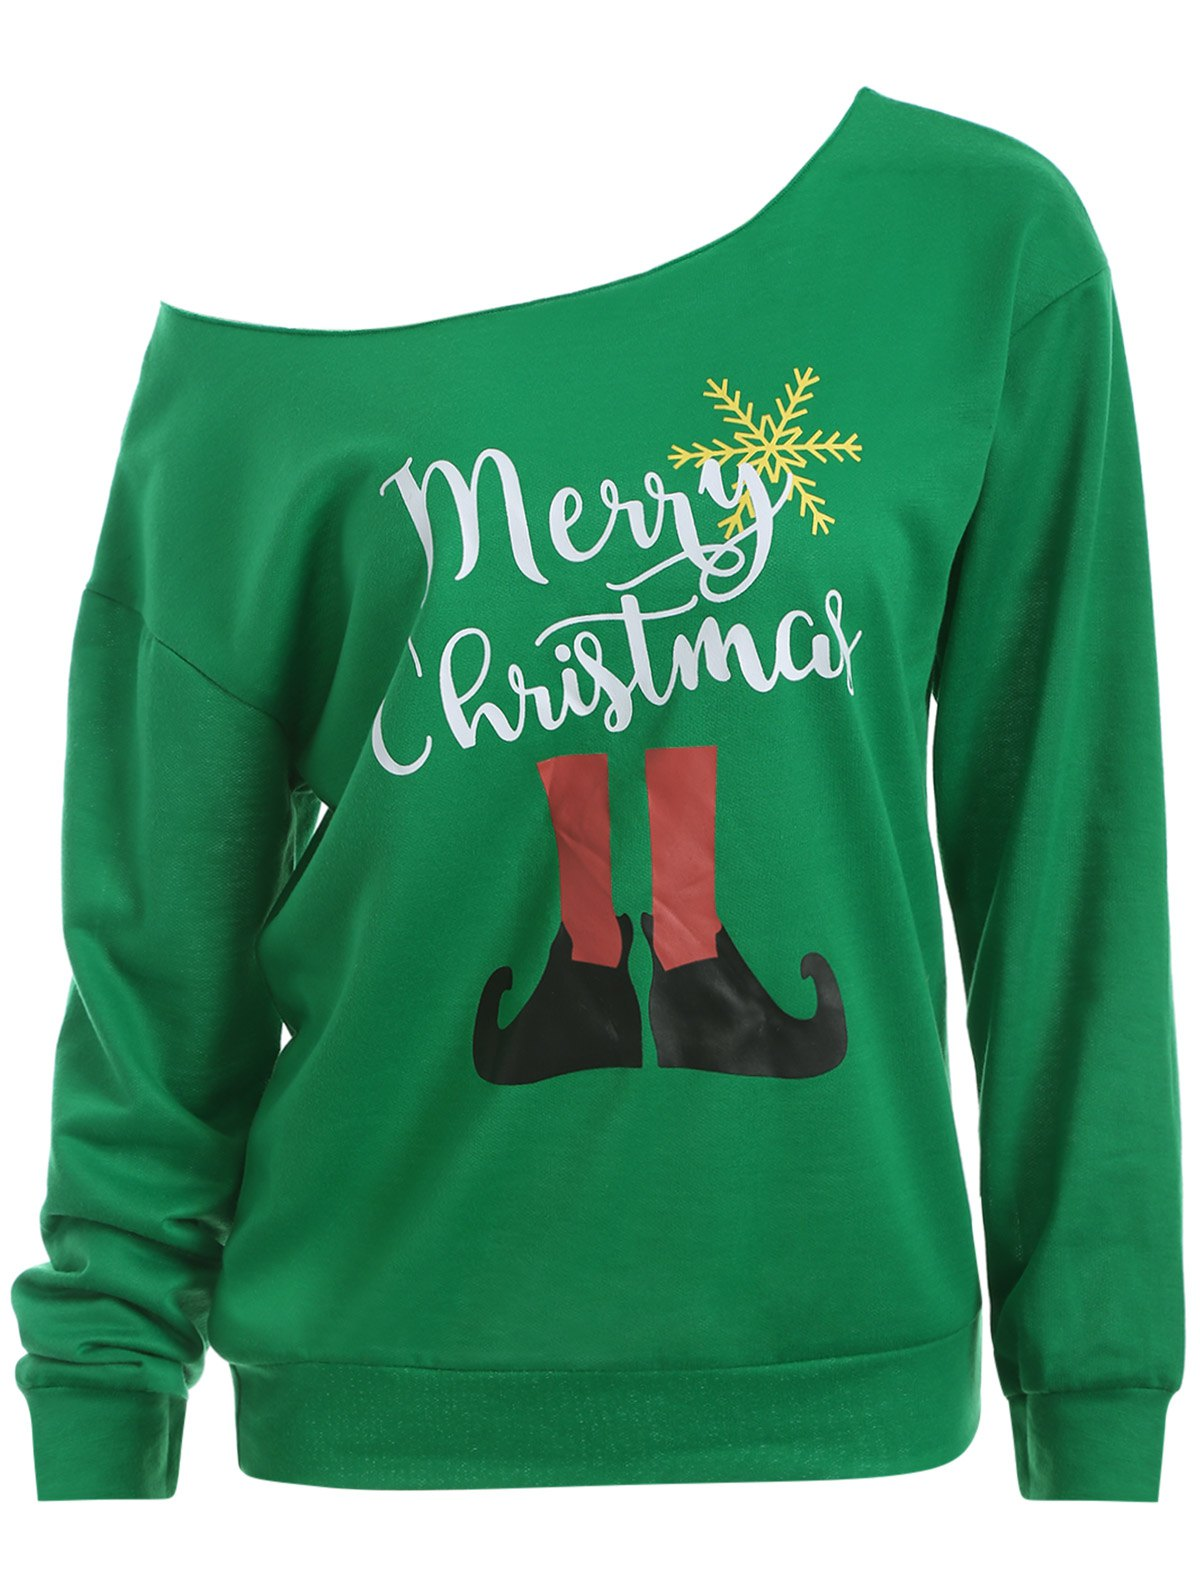 Image of Skew Neck Christmas Graphic Green Sweatshirt